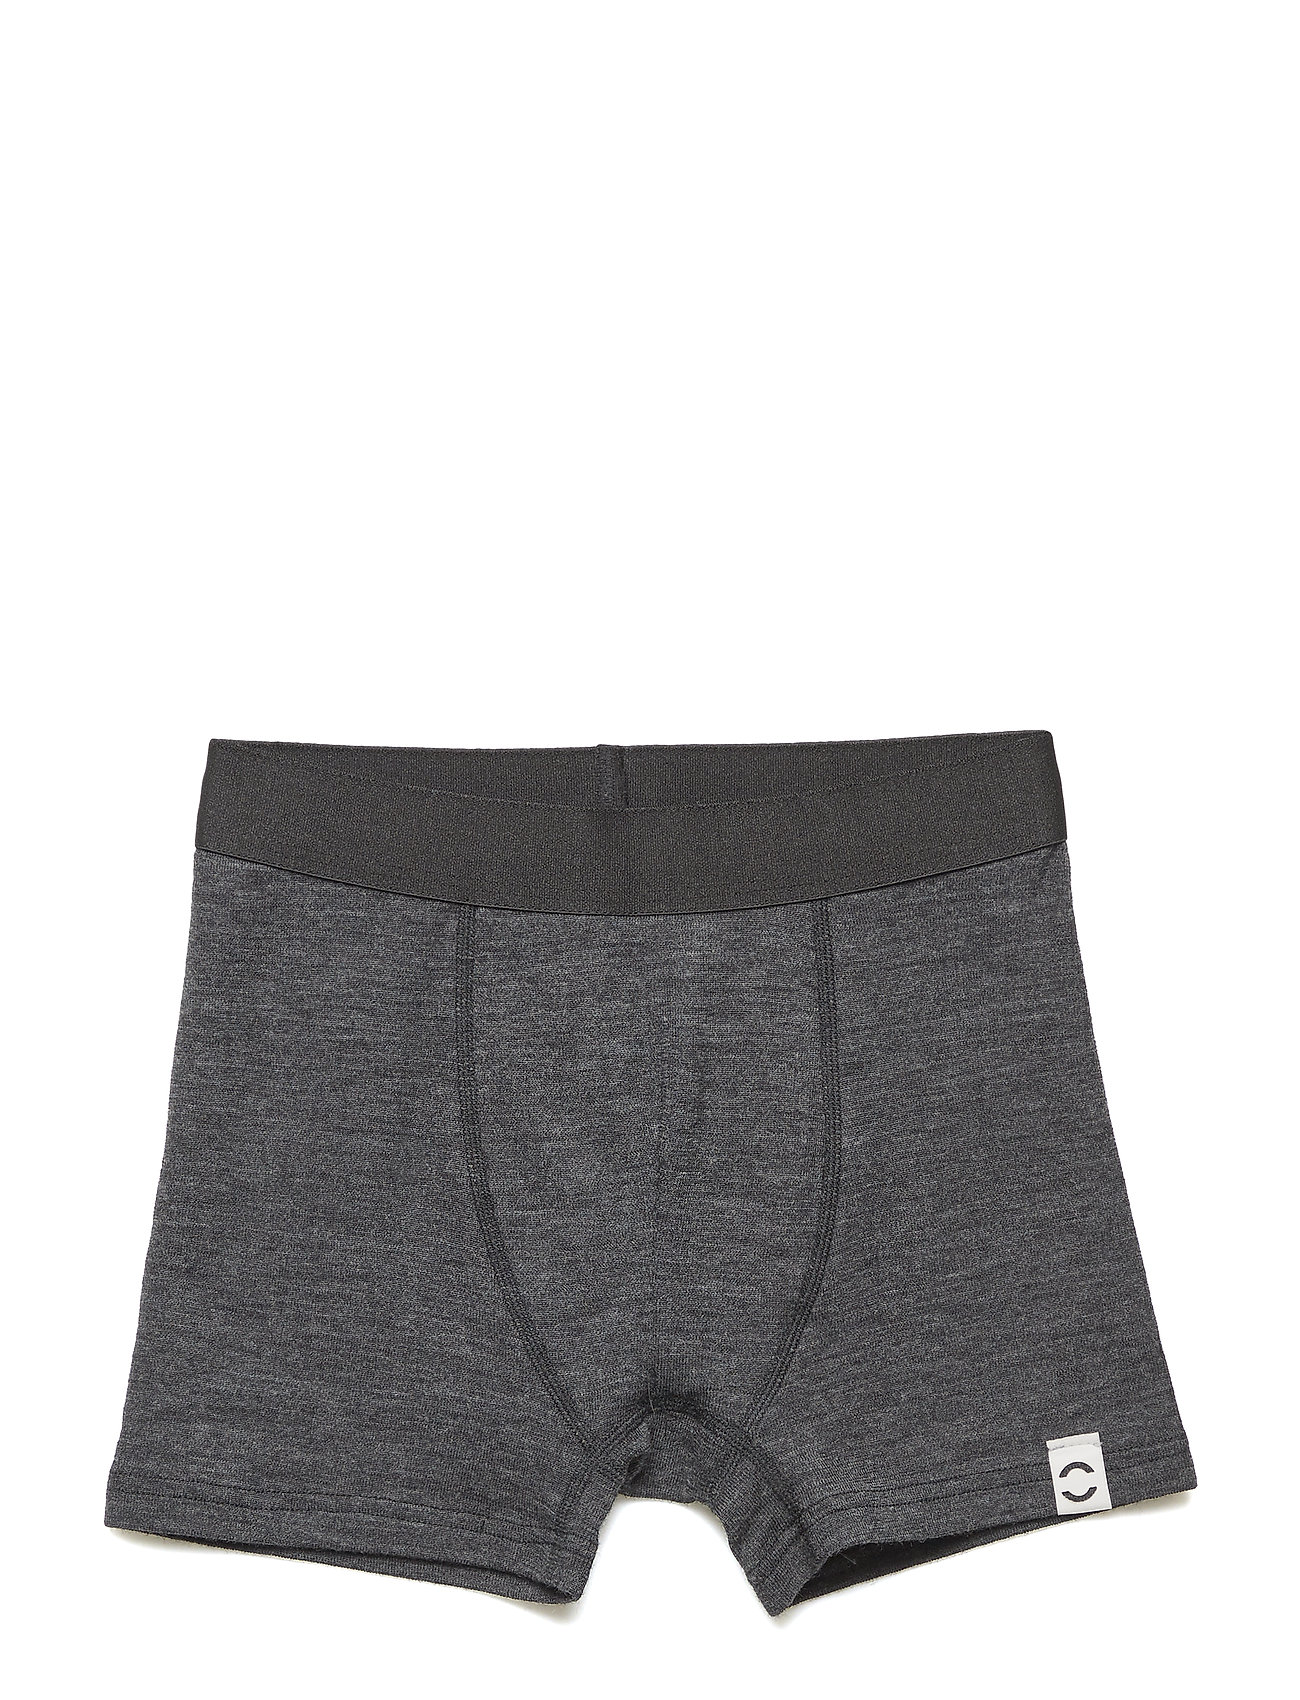 Image of Wool Shorts Boys Trusser Grå Mikk-Line (3067539495)